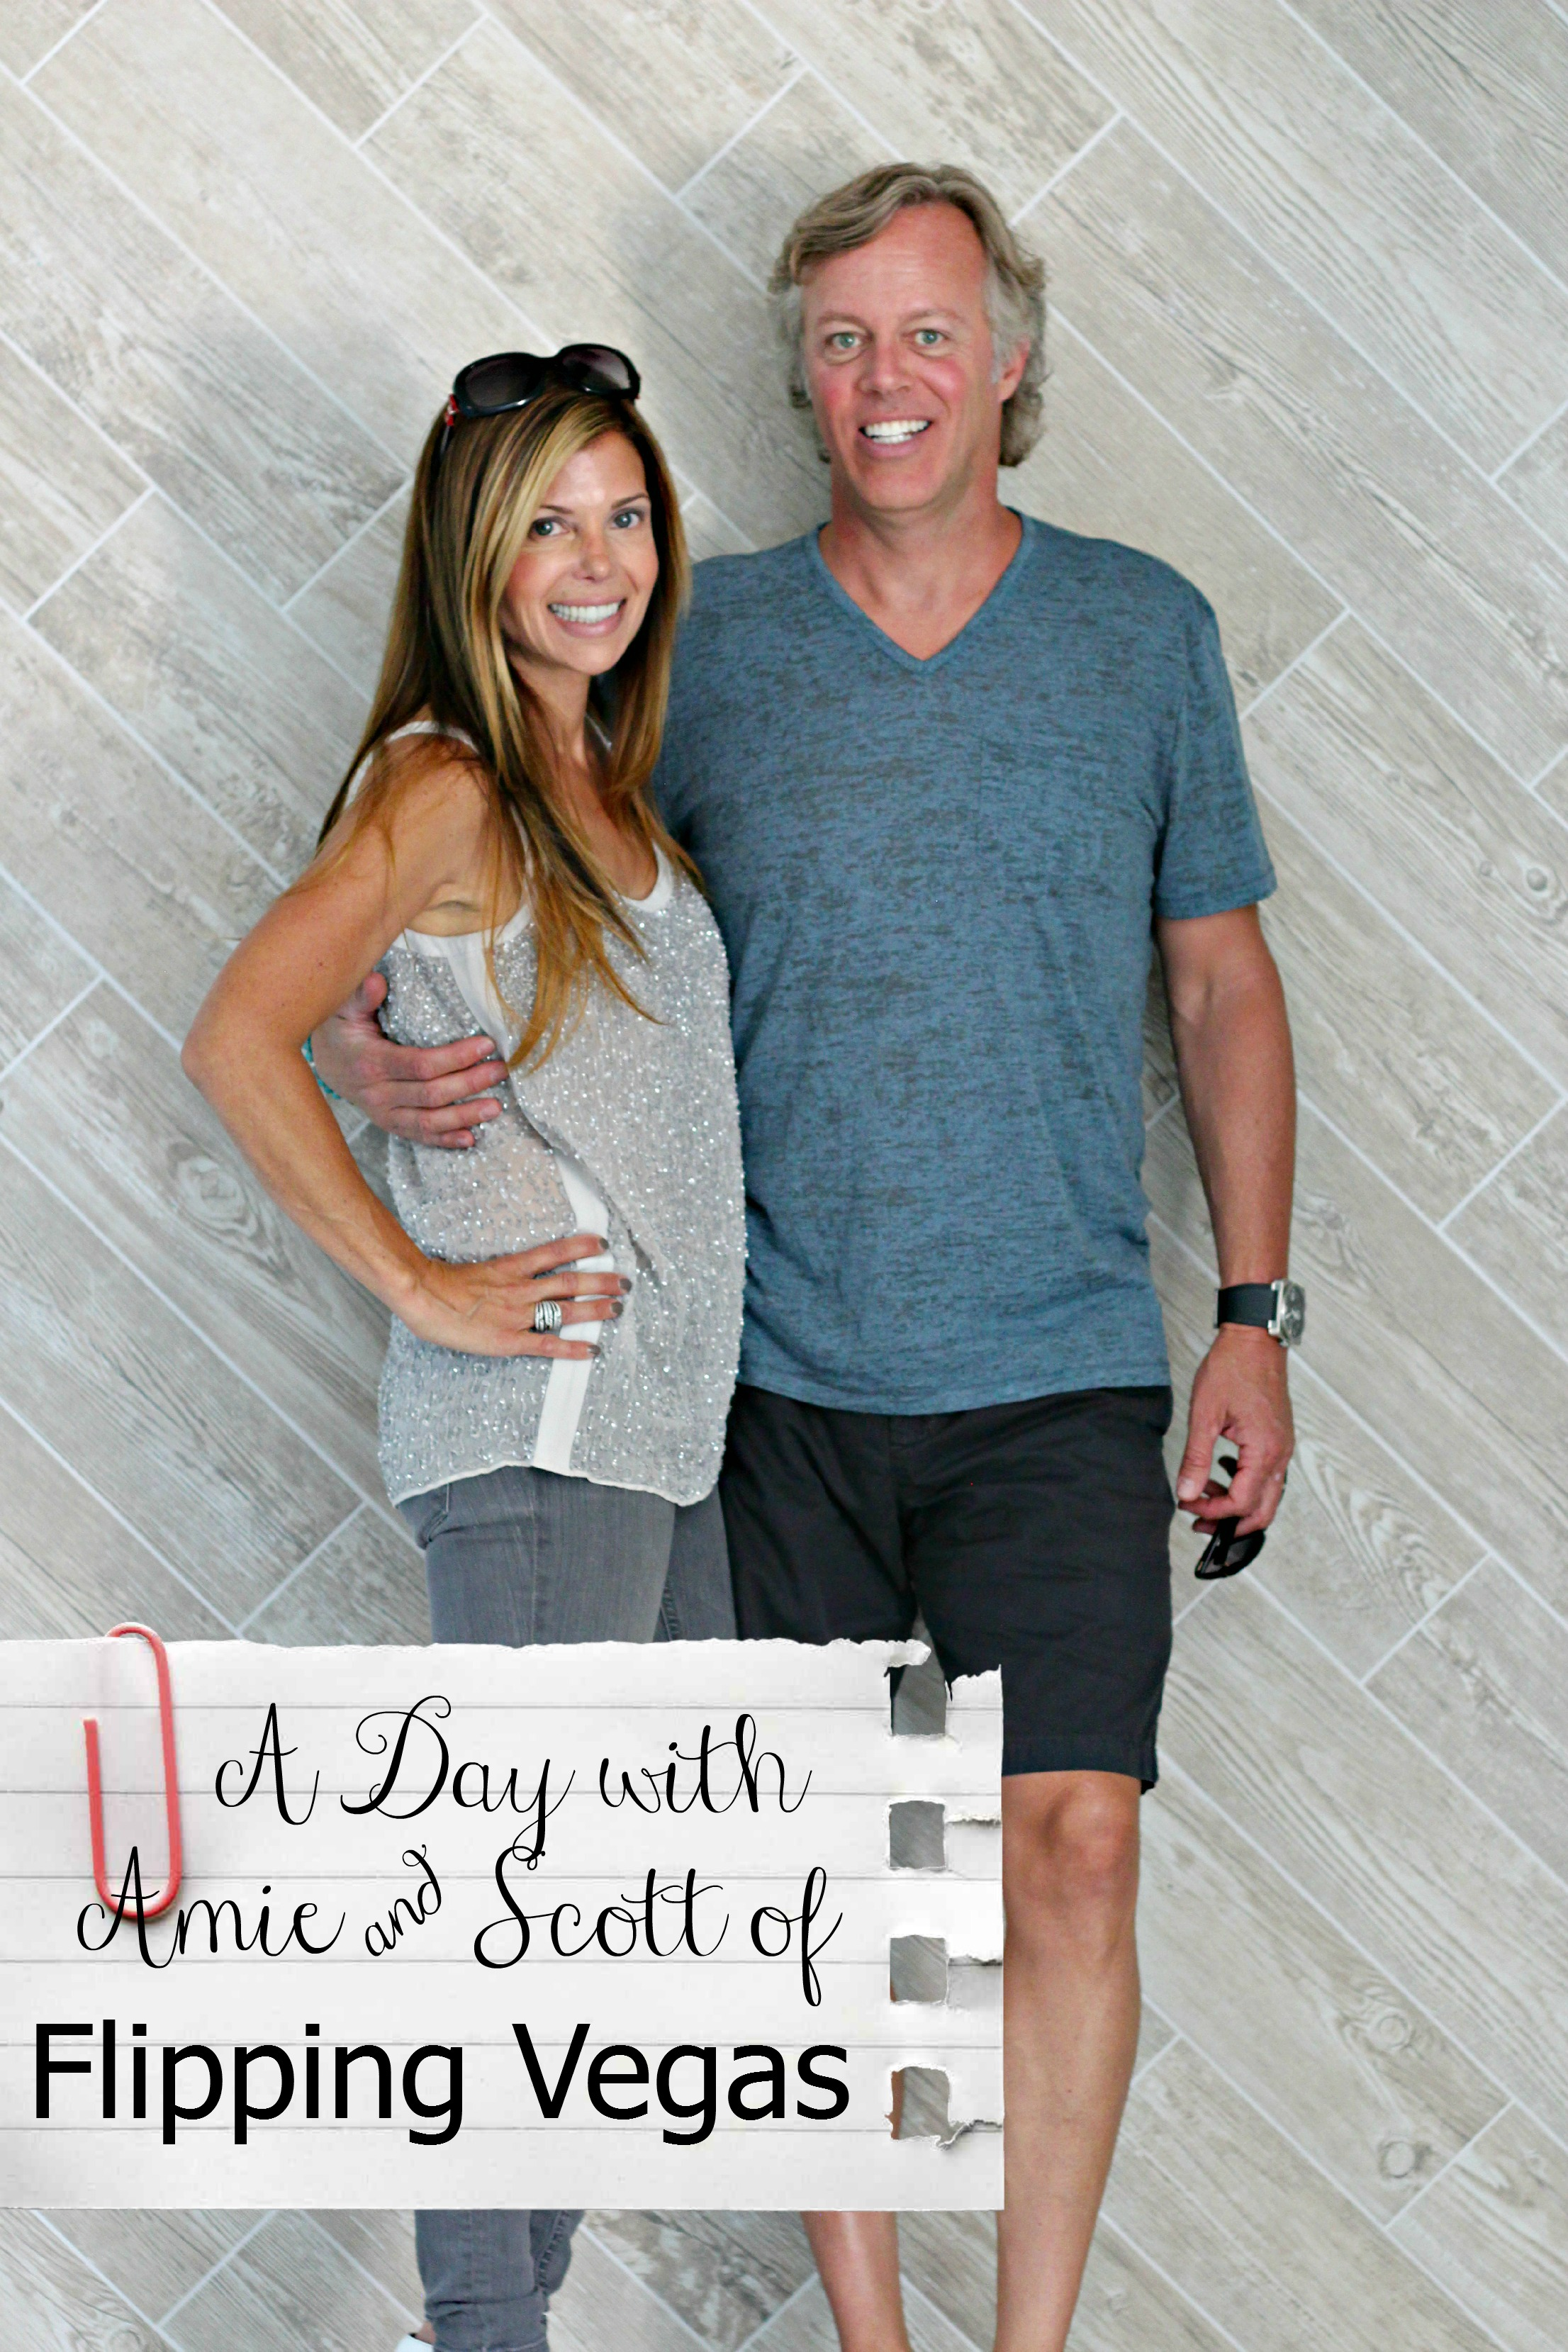 Day with Scott and Amie of Flipping Vegas